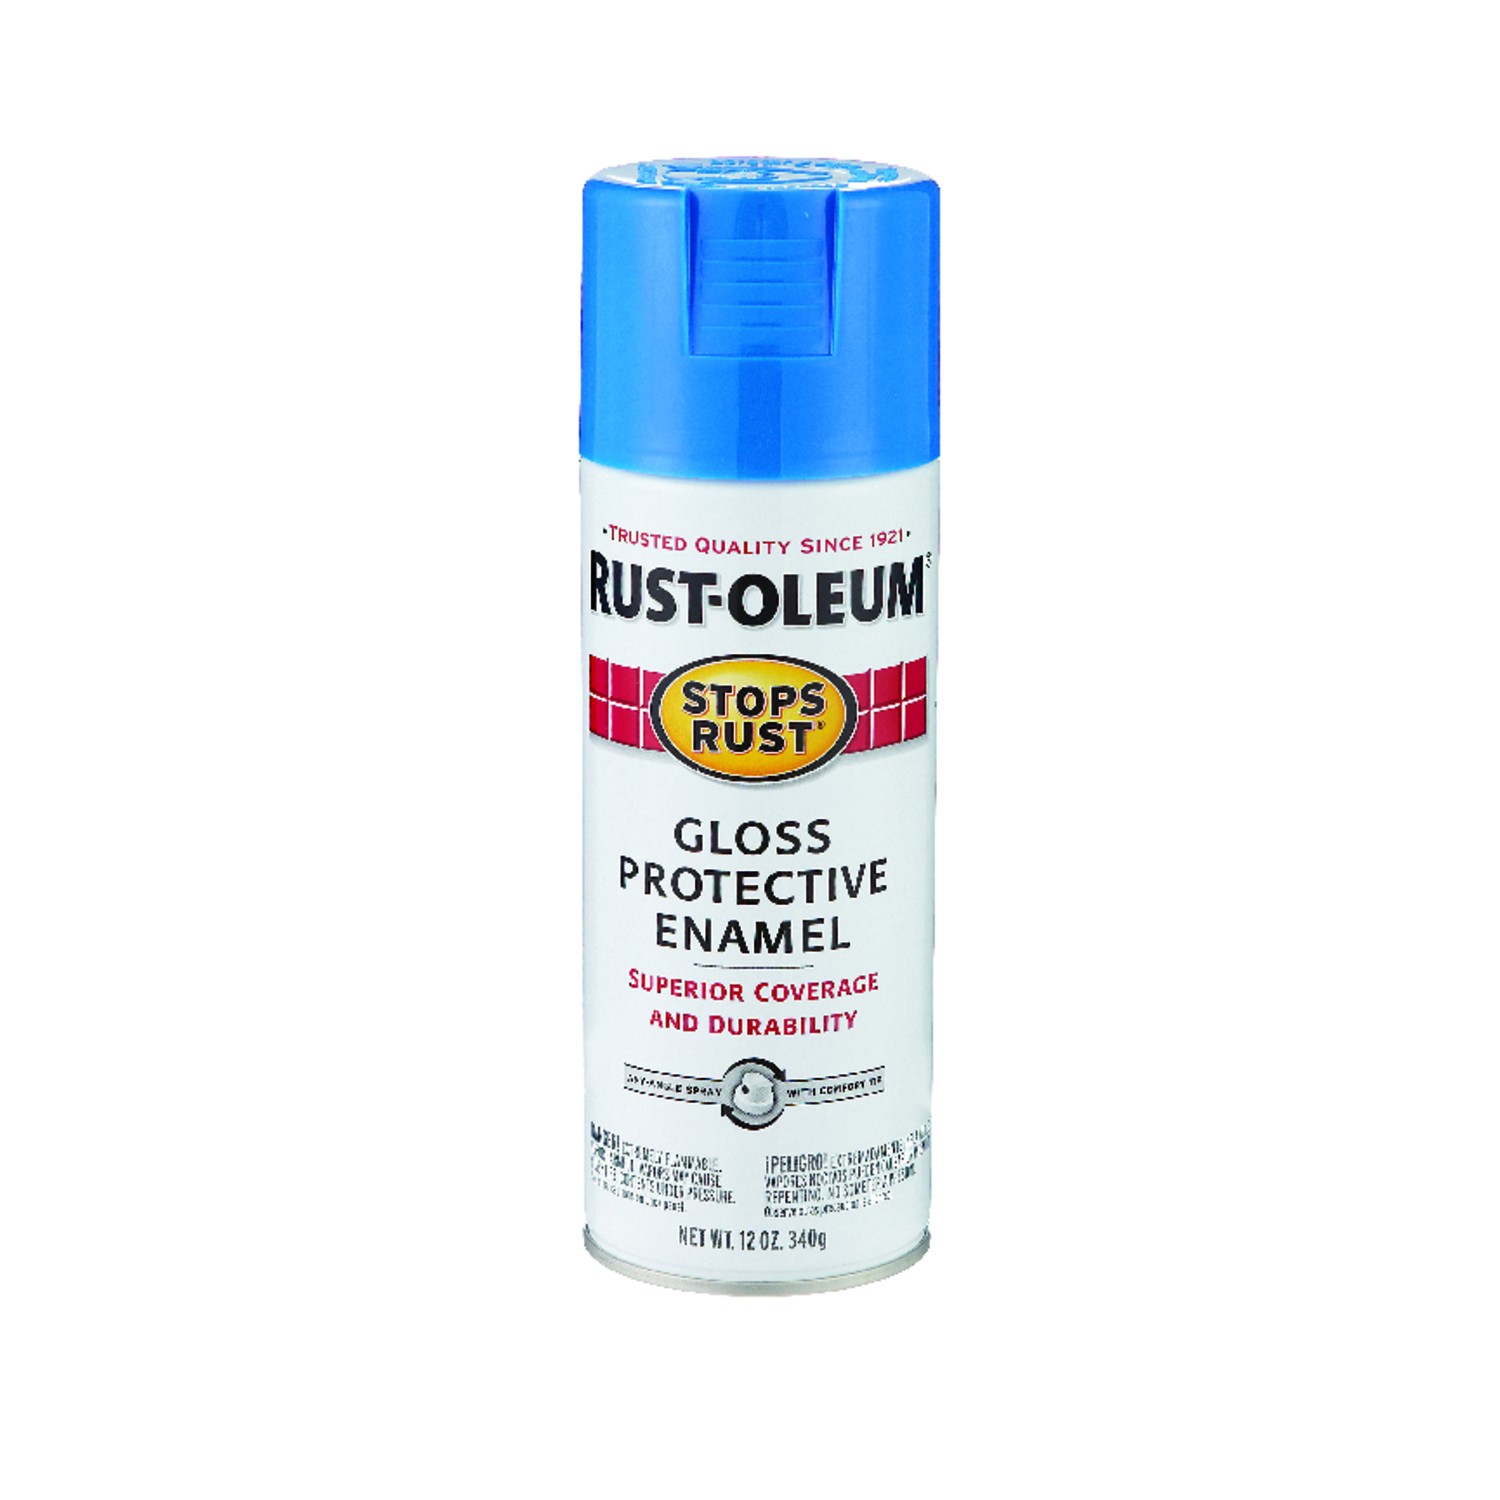 Rust-Oleum  Stops Rust  Gloss  Sail Blue  12 oz. Spray Paint